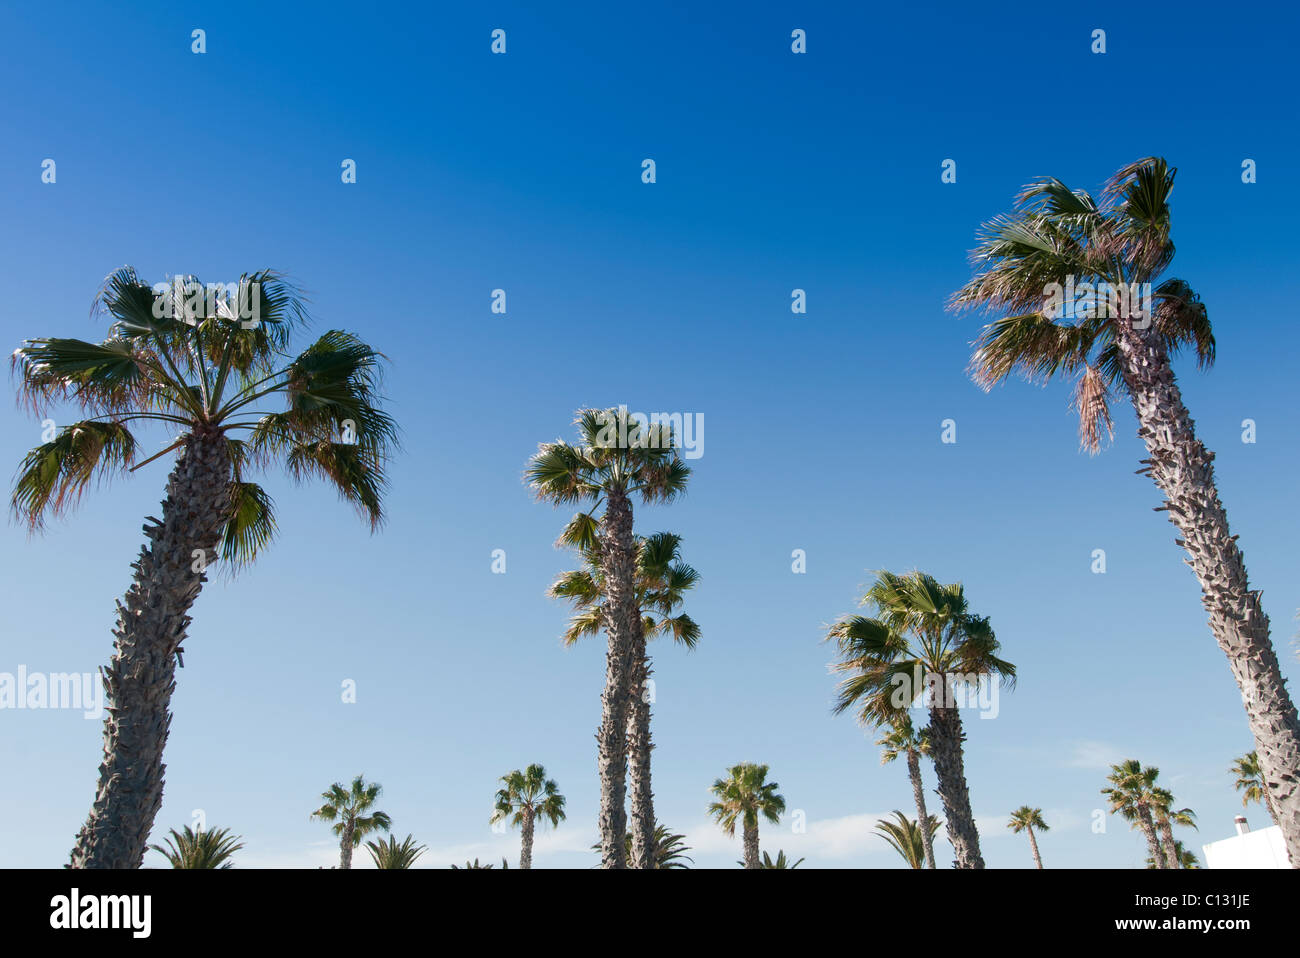 palm trees with bright blue sky. - Stock Image